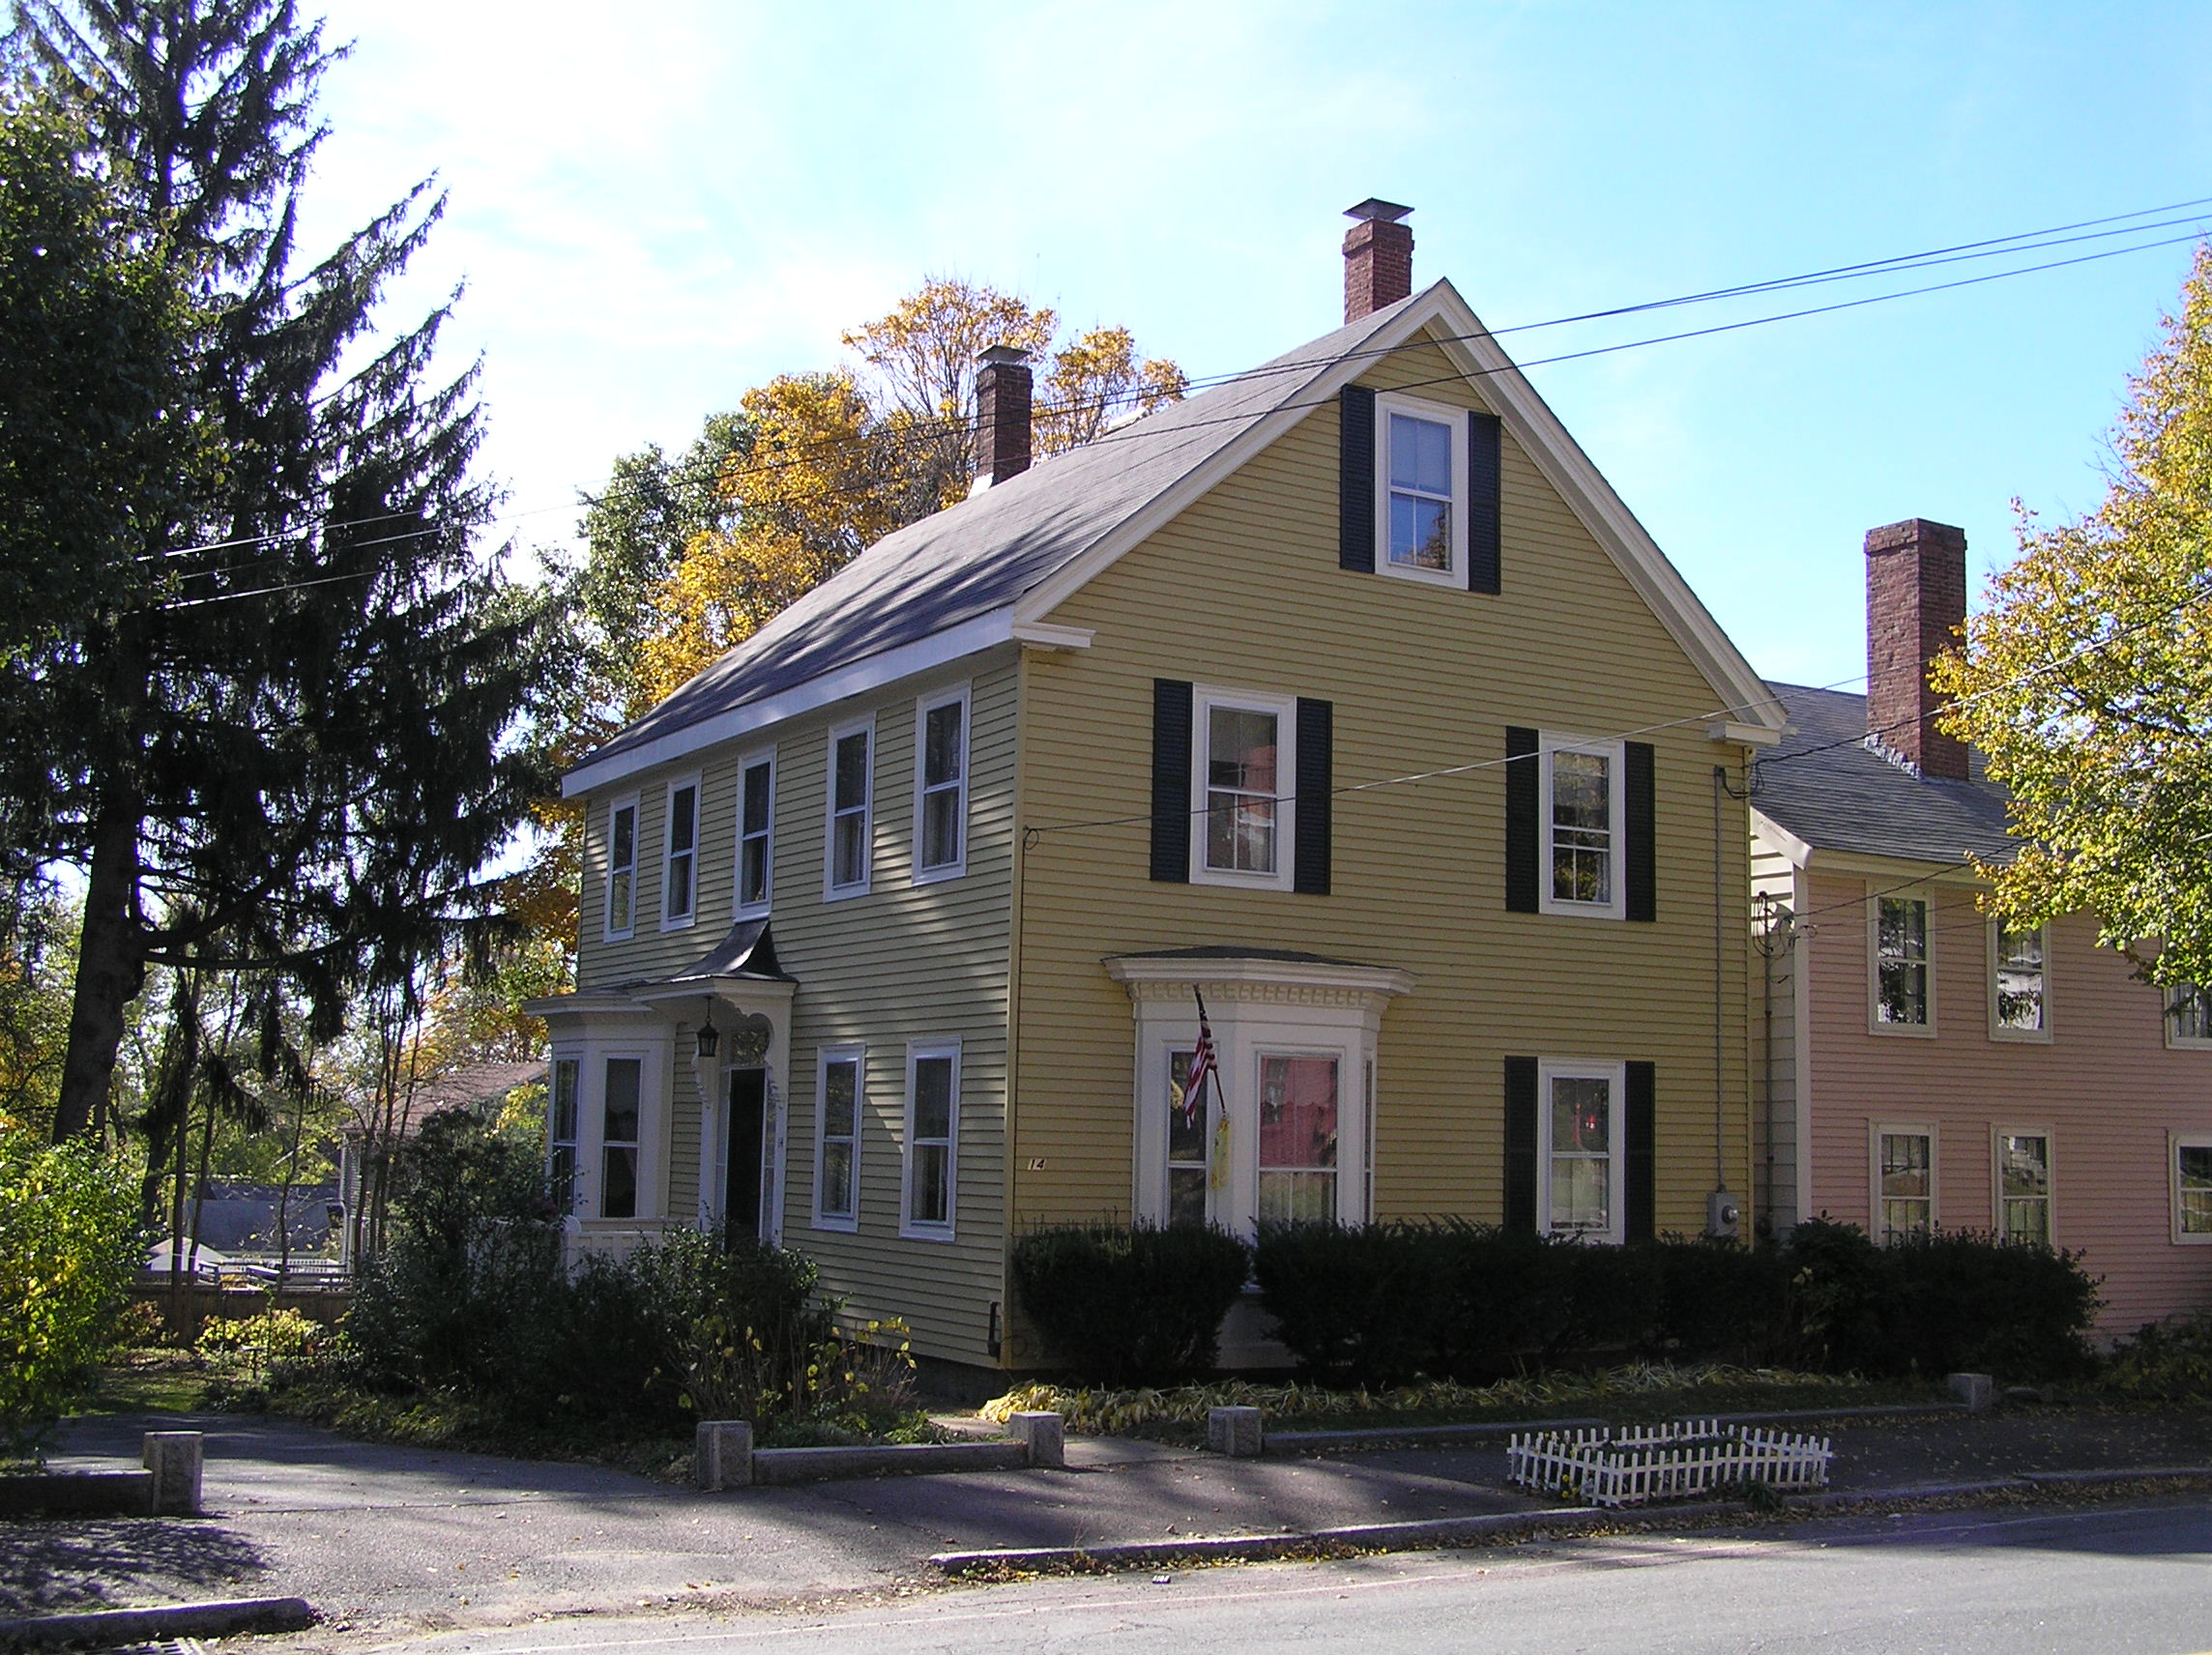 The George Lord house, 14 High Street, Ipswich MA